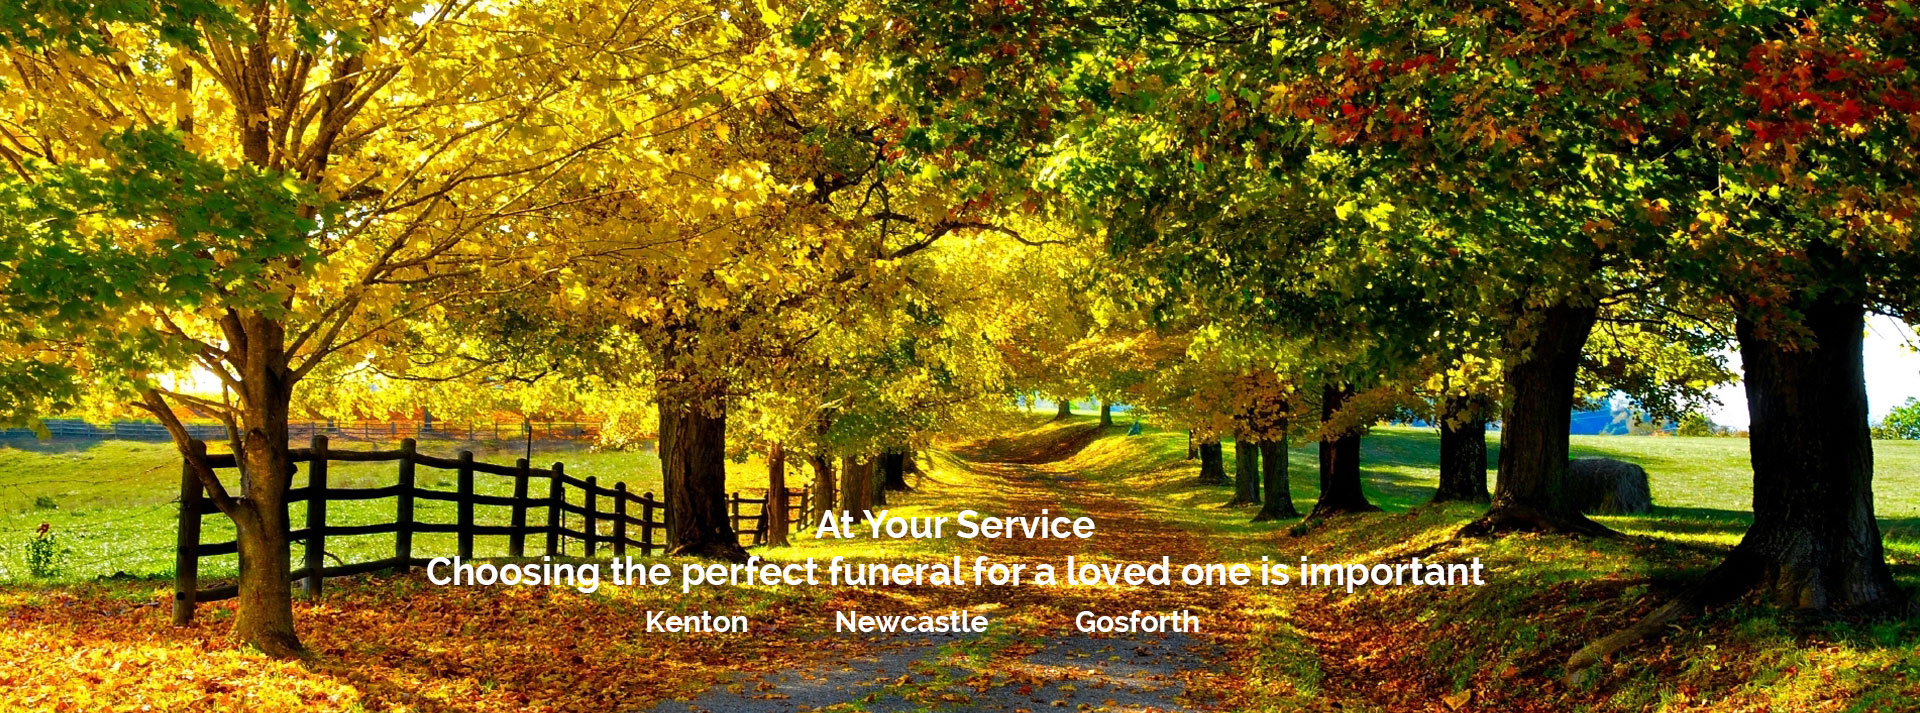 Funeral directors and funeral services in Newcastle, Kenton, Gosforth, Kingston Park, Great Park, Benton, Jesmond, Blakelaw, North Tyneside, Northumberland and Gateshead. Funeral advice on cremations, burials, home or venue services, coffins and flower arrangements.